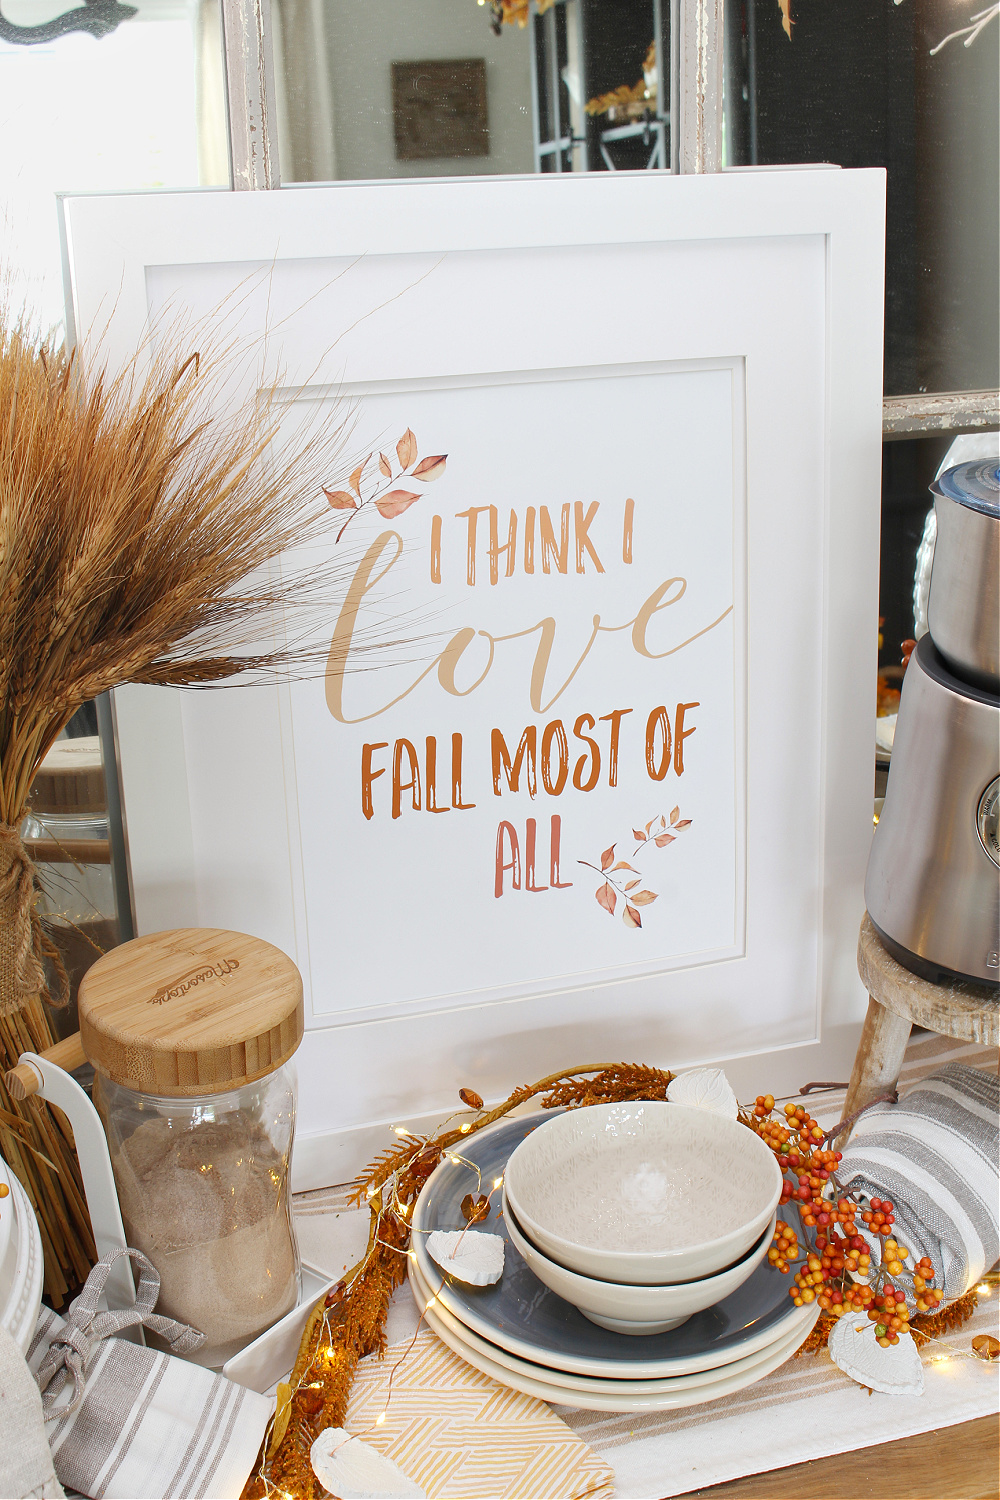 I Think I Love Fall Most of All free printable in a white frame.